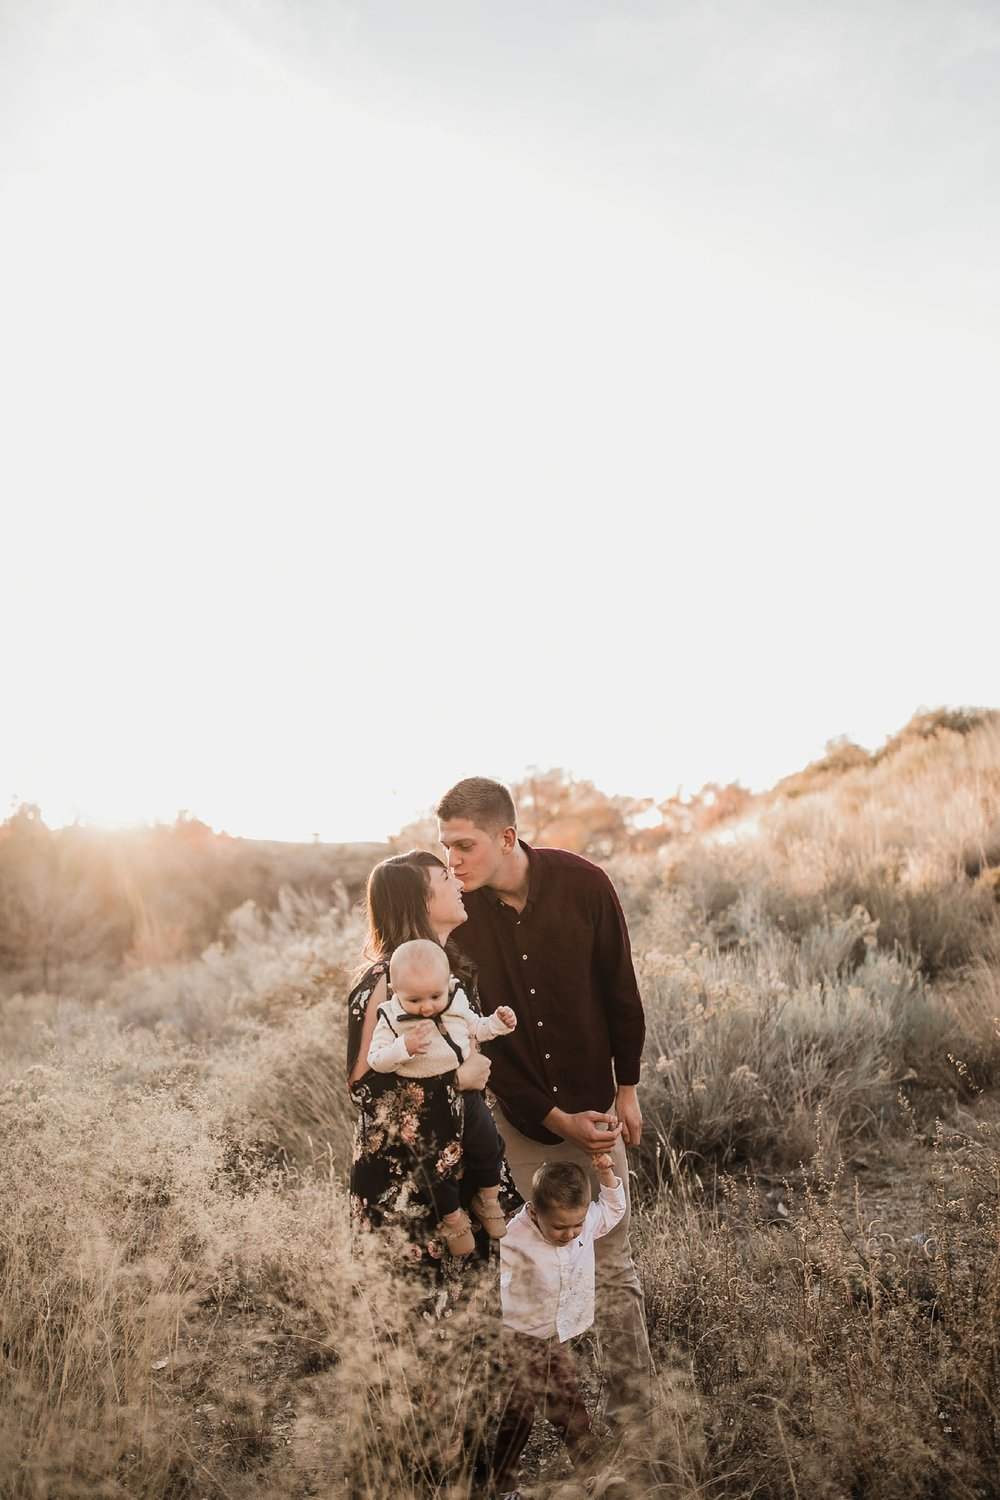 Alicia+lucia+photography+-+albuquerque+wedding+photographer+-+santa+fe+wedding+photography+-+new+mexico+wedding+photographer+-+family+photography+-+family+session+-+southwest+photographer+-+golden+hour+session_0013.jpg